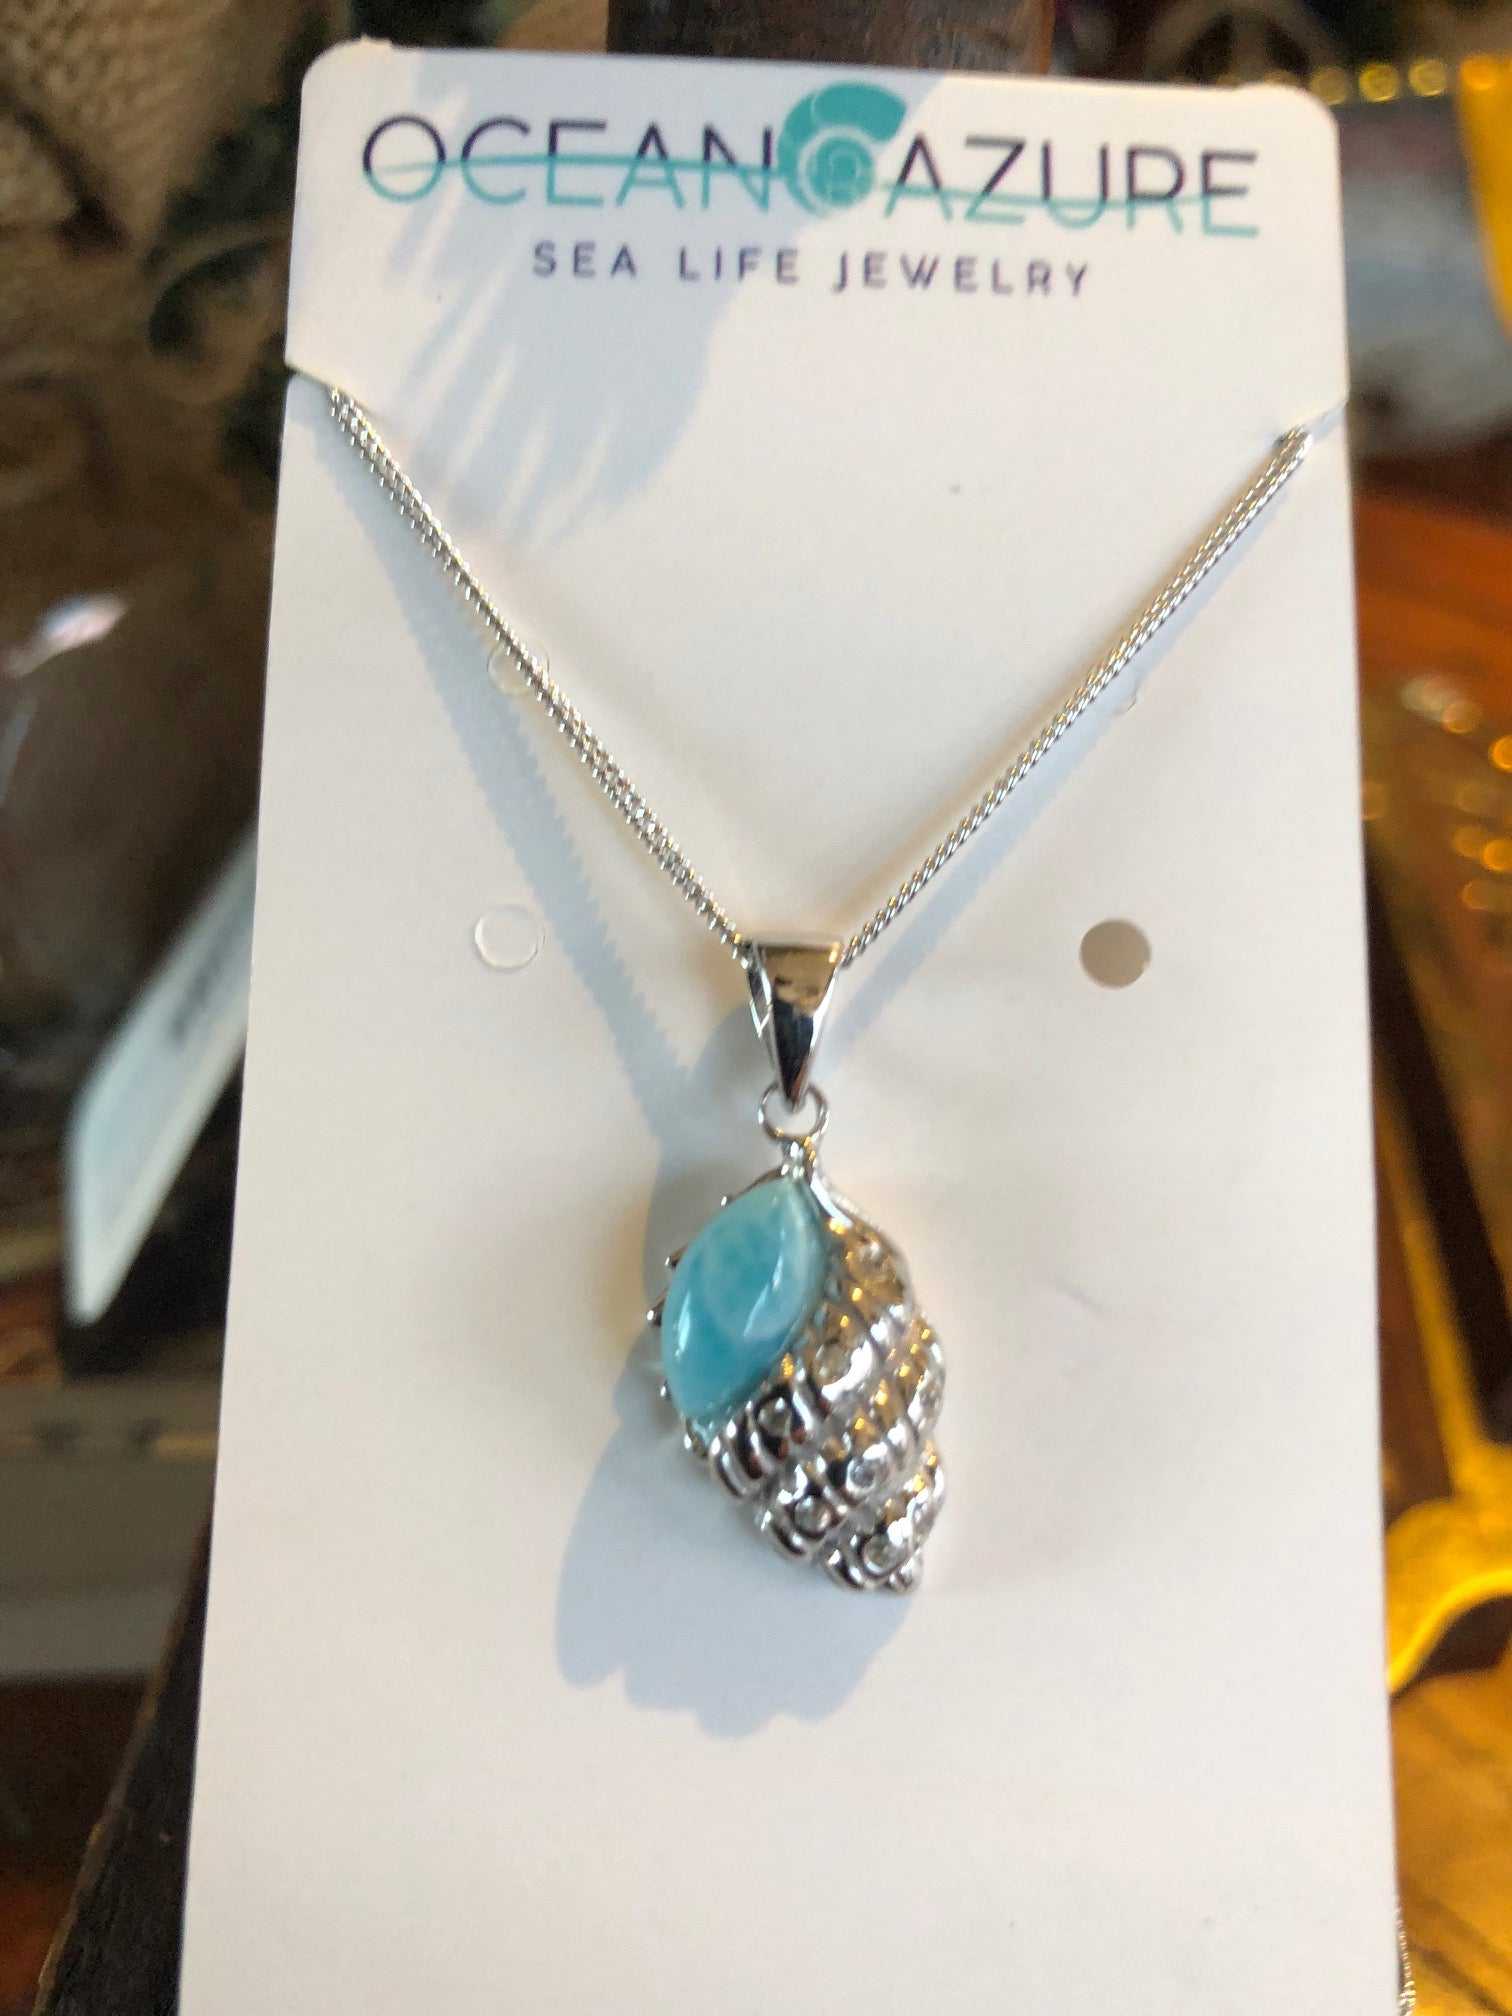 Necklace, Waved Welk Pendant, Sterling Silver with Larimar Stone